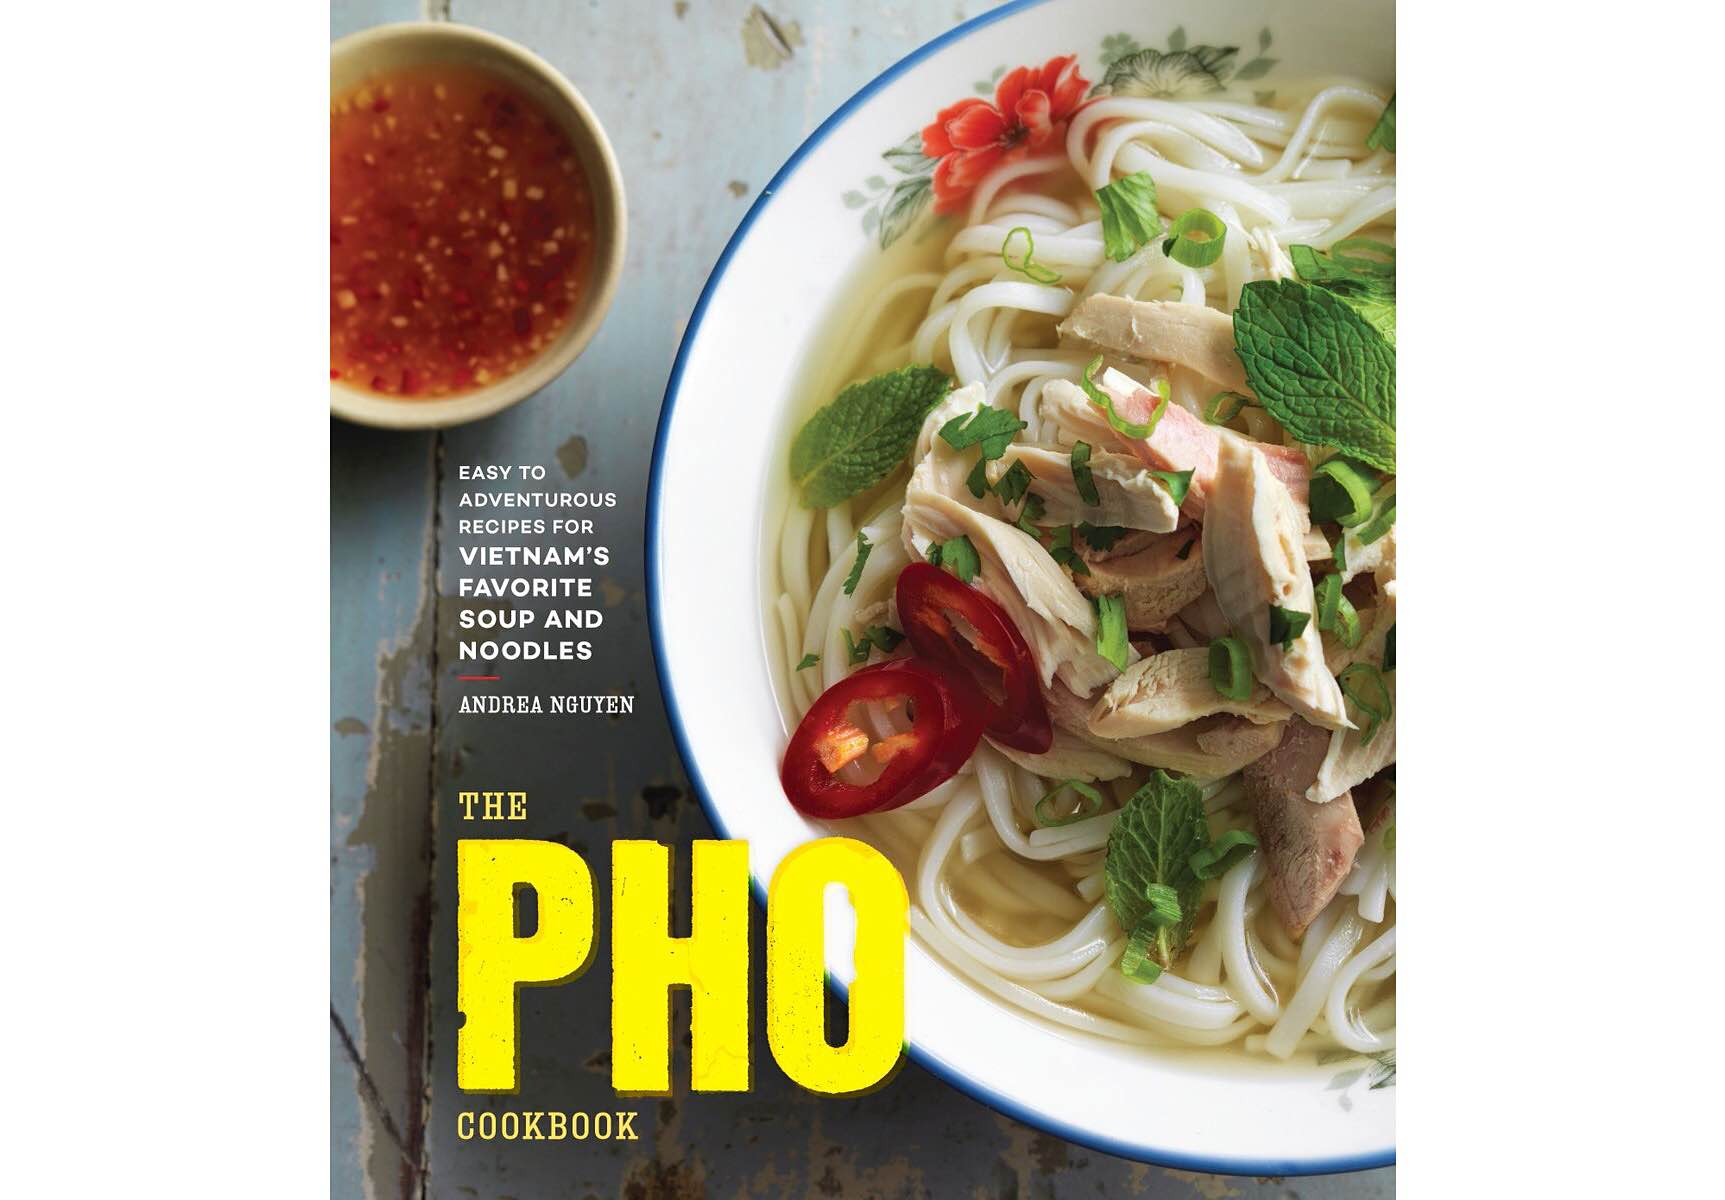 The Pho Cookbook by Andrea Nguyen.